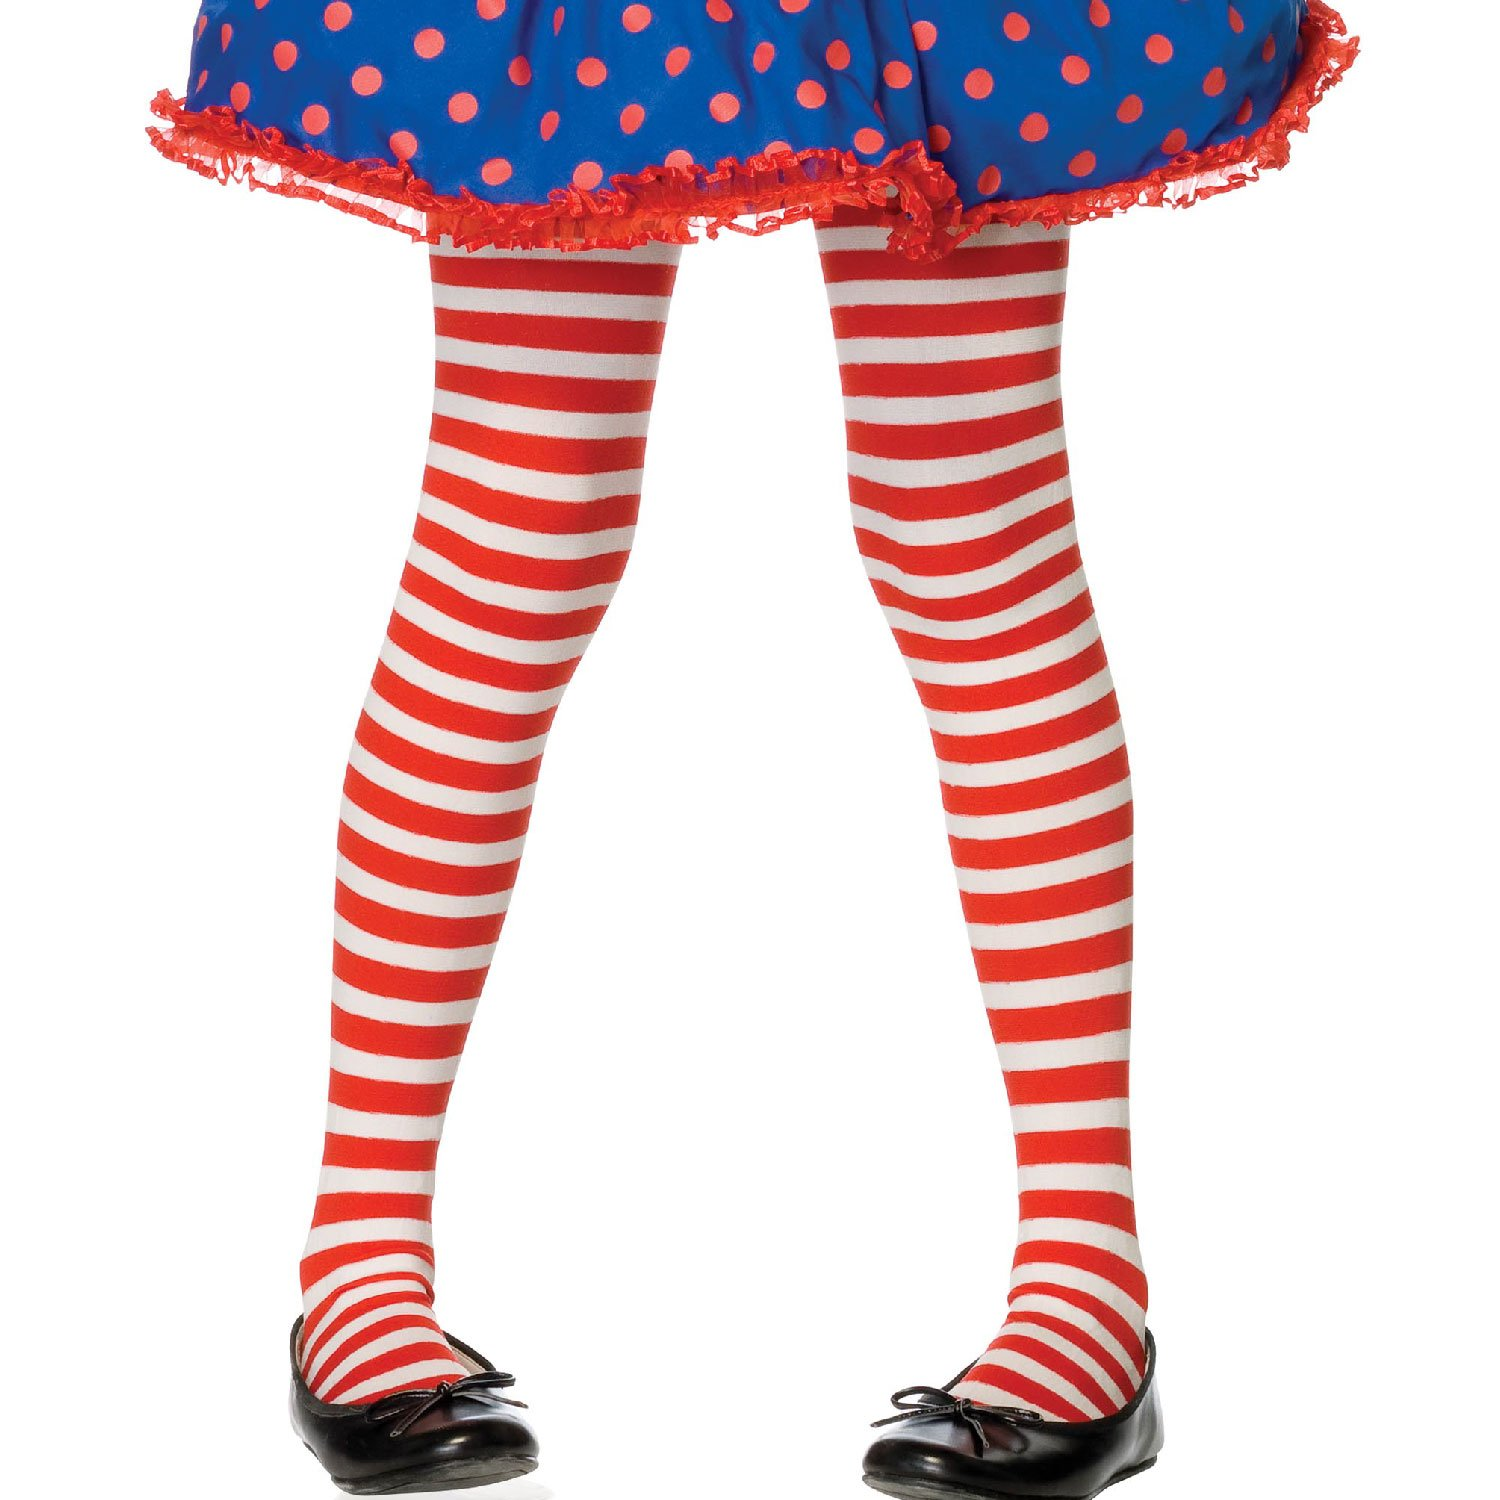 4-6 years Girls Black And Red Striped Tights by Leg Avenue